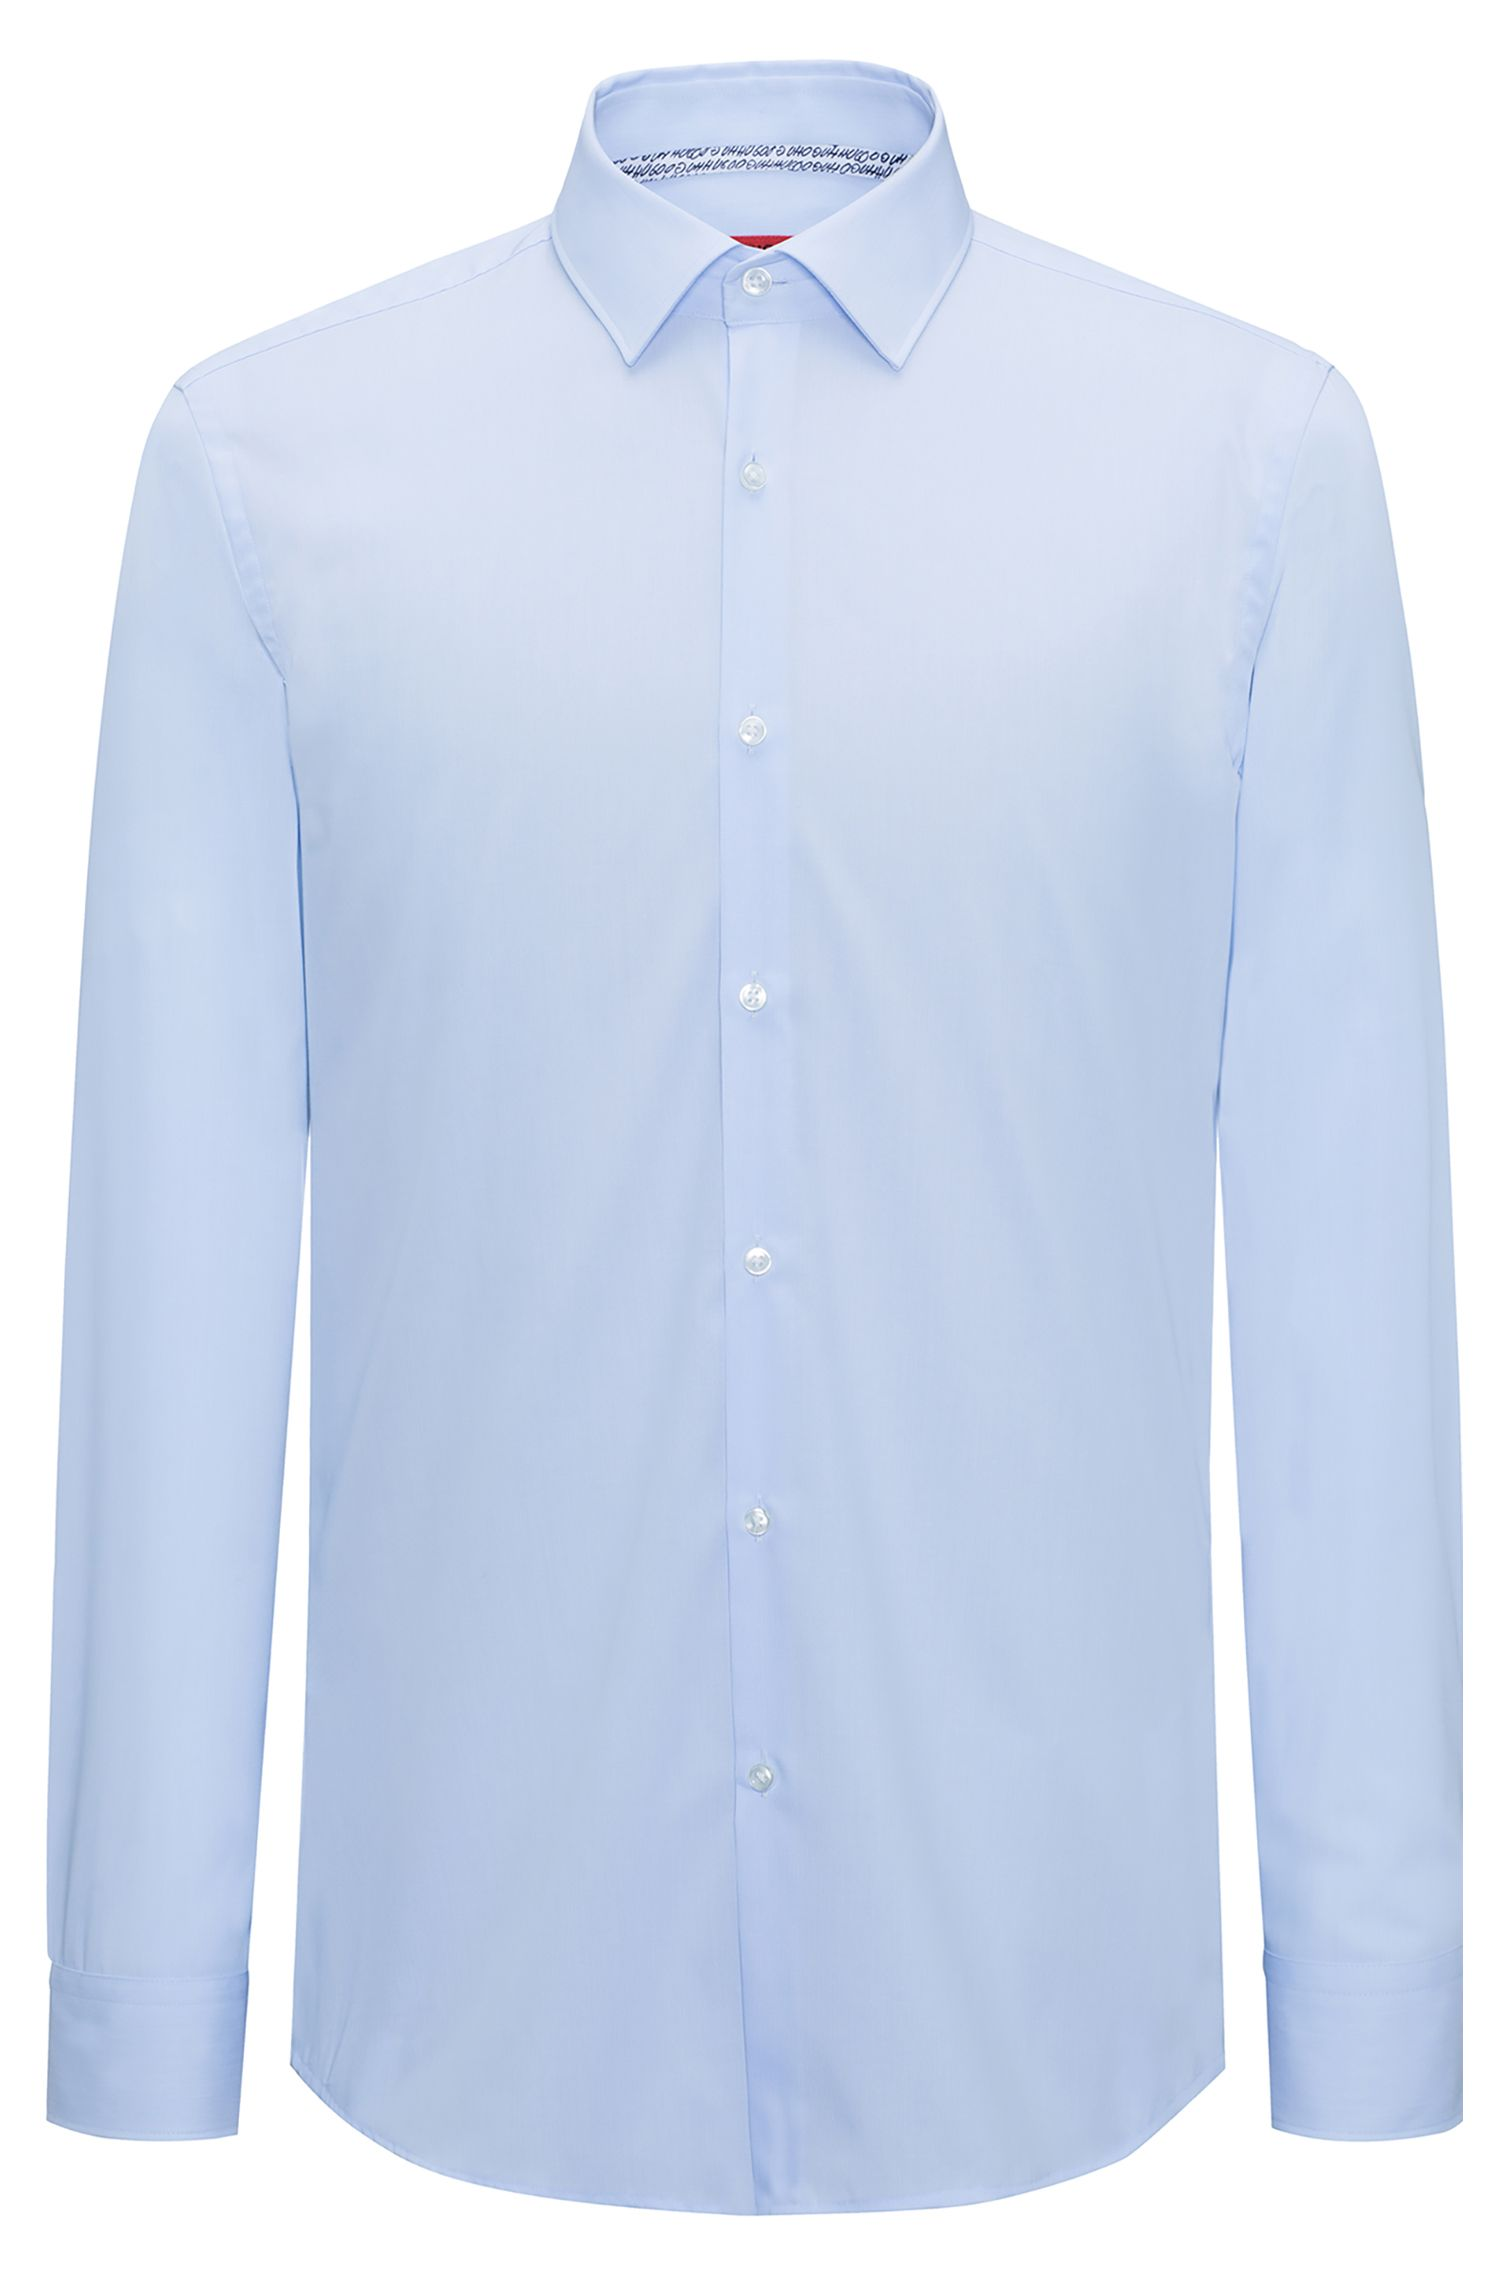 Slim-fit hairline-striped shirt in easy-iron cotton poplin